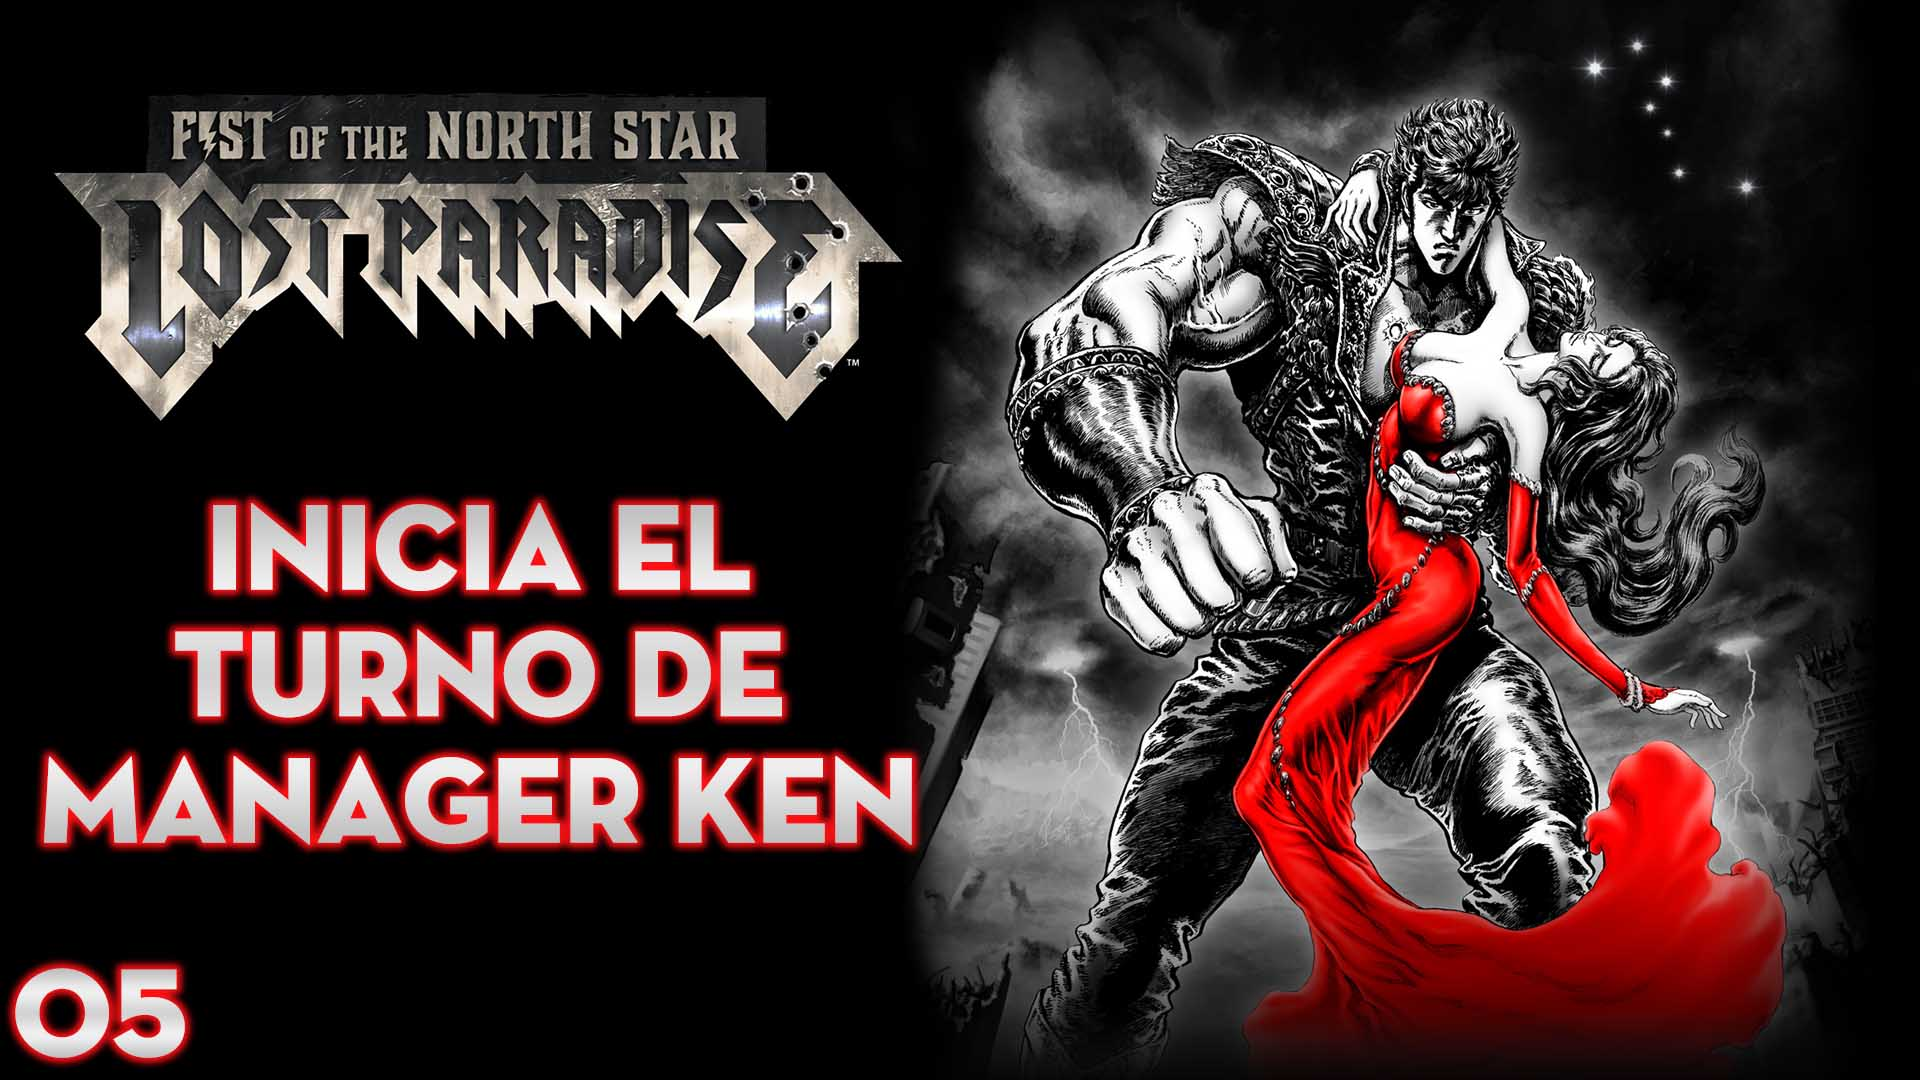 Serie Fist of the North Star: Lost Paradise #5 – Inicia el Turno de Manager Ken